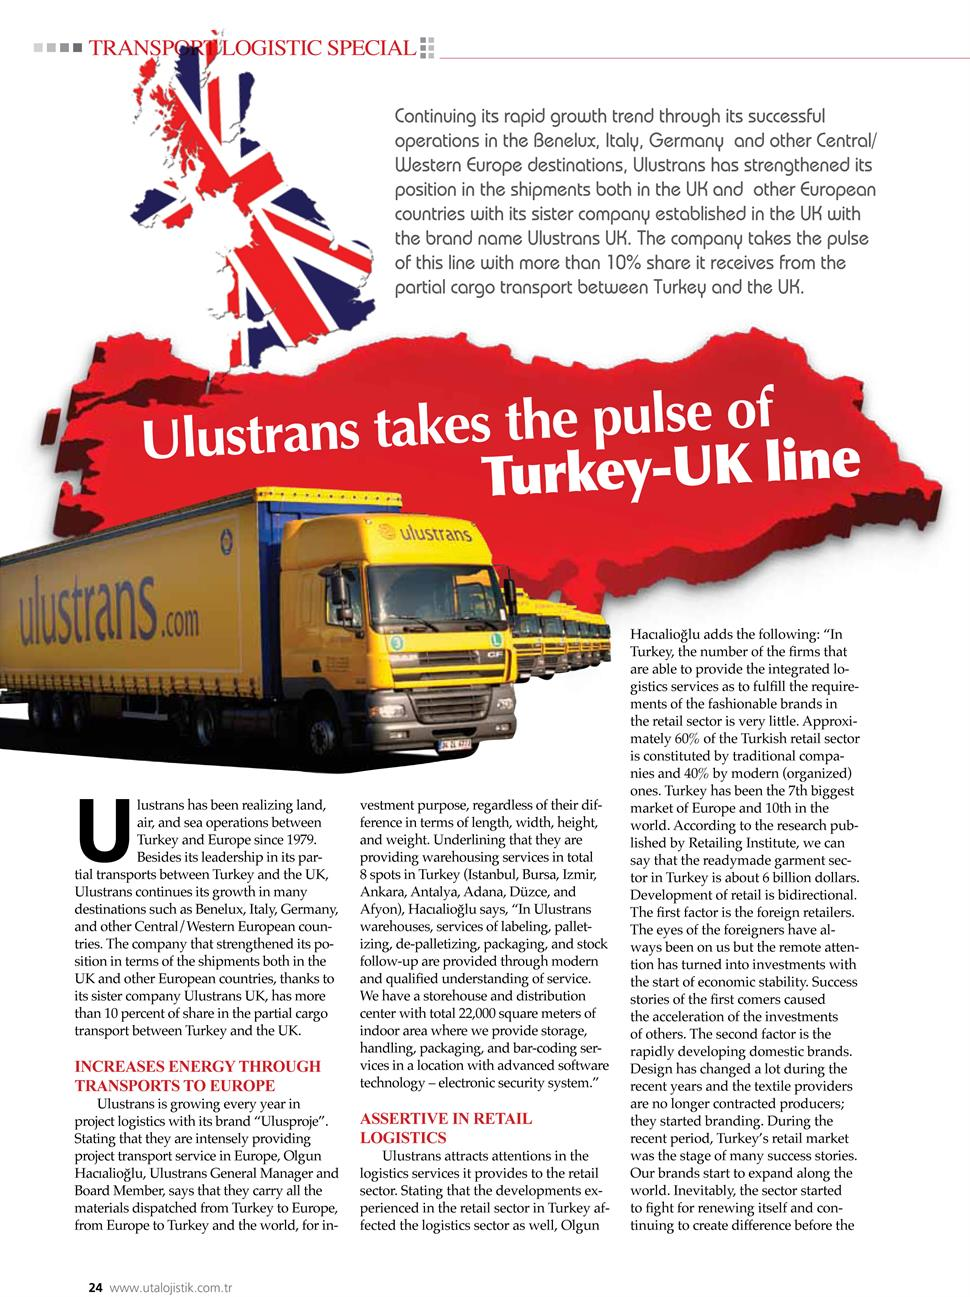 Ulustrans takes the pulse of Turkey-UK Line